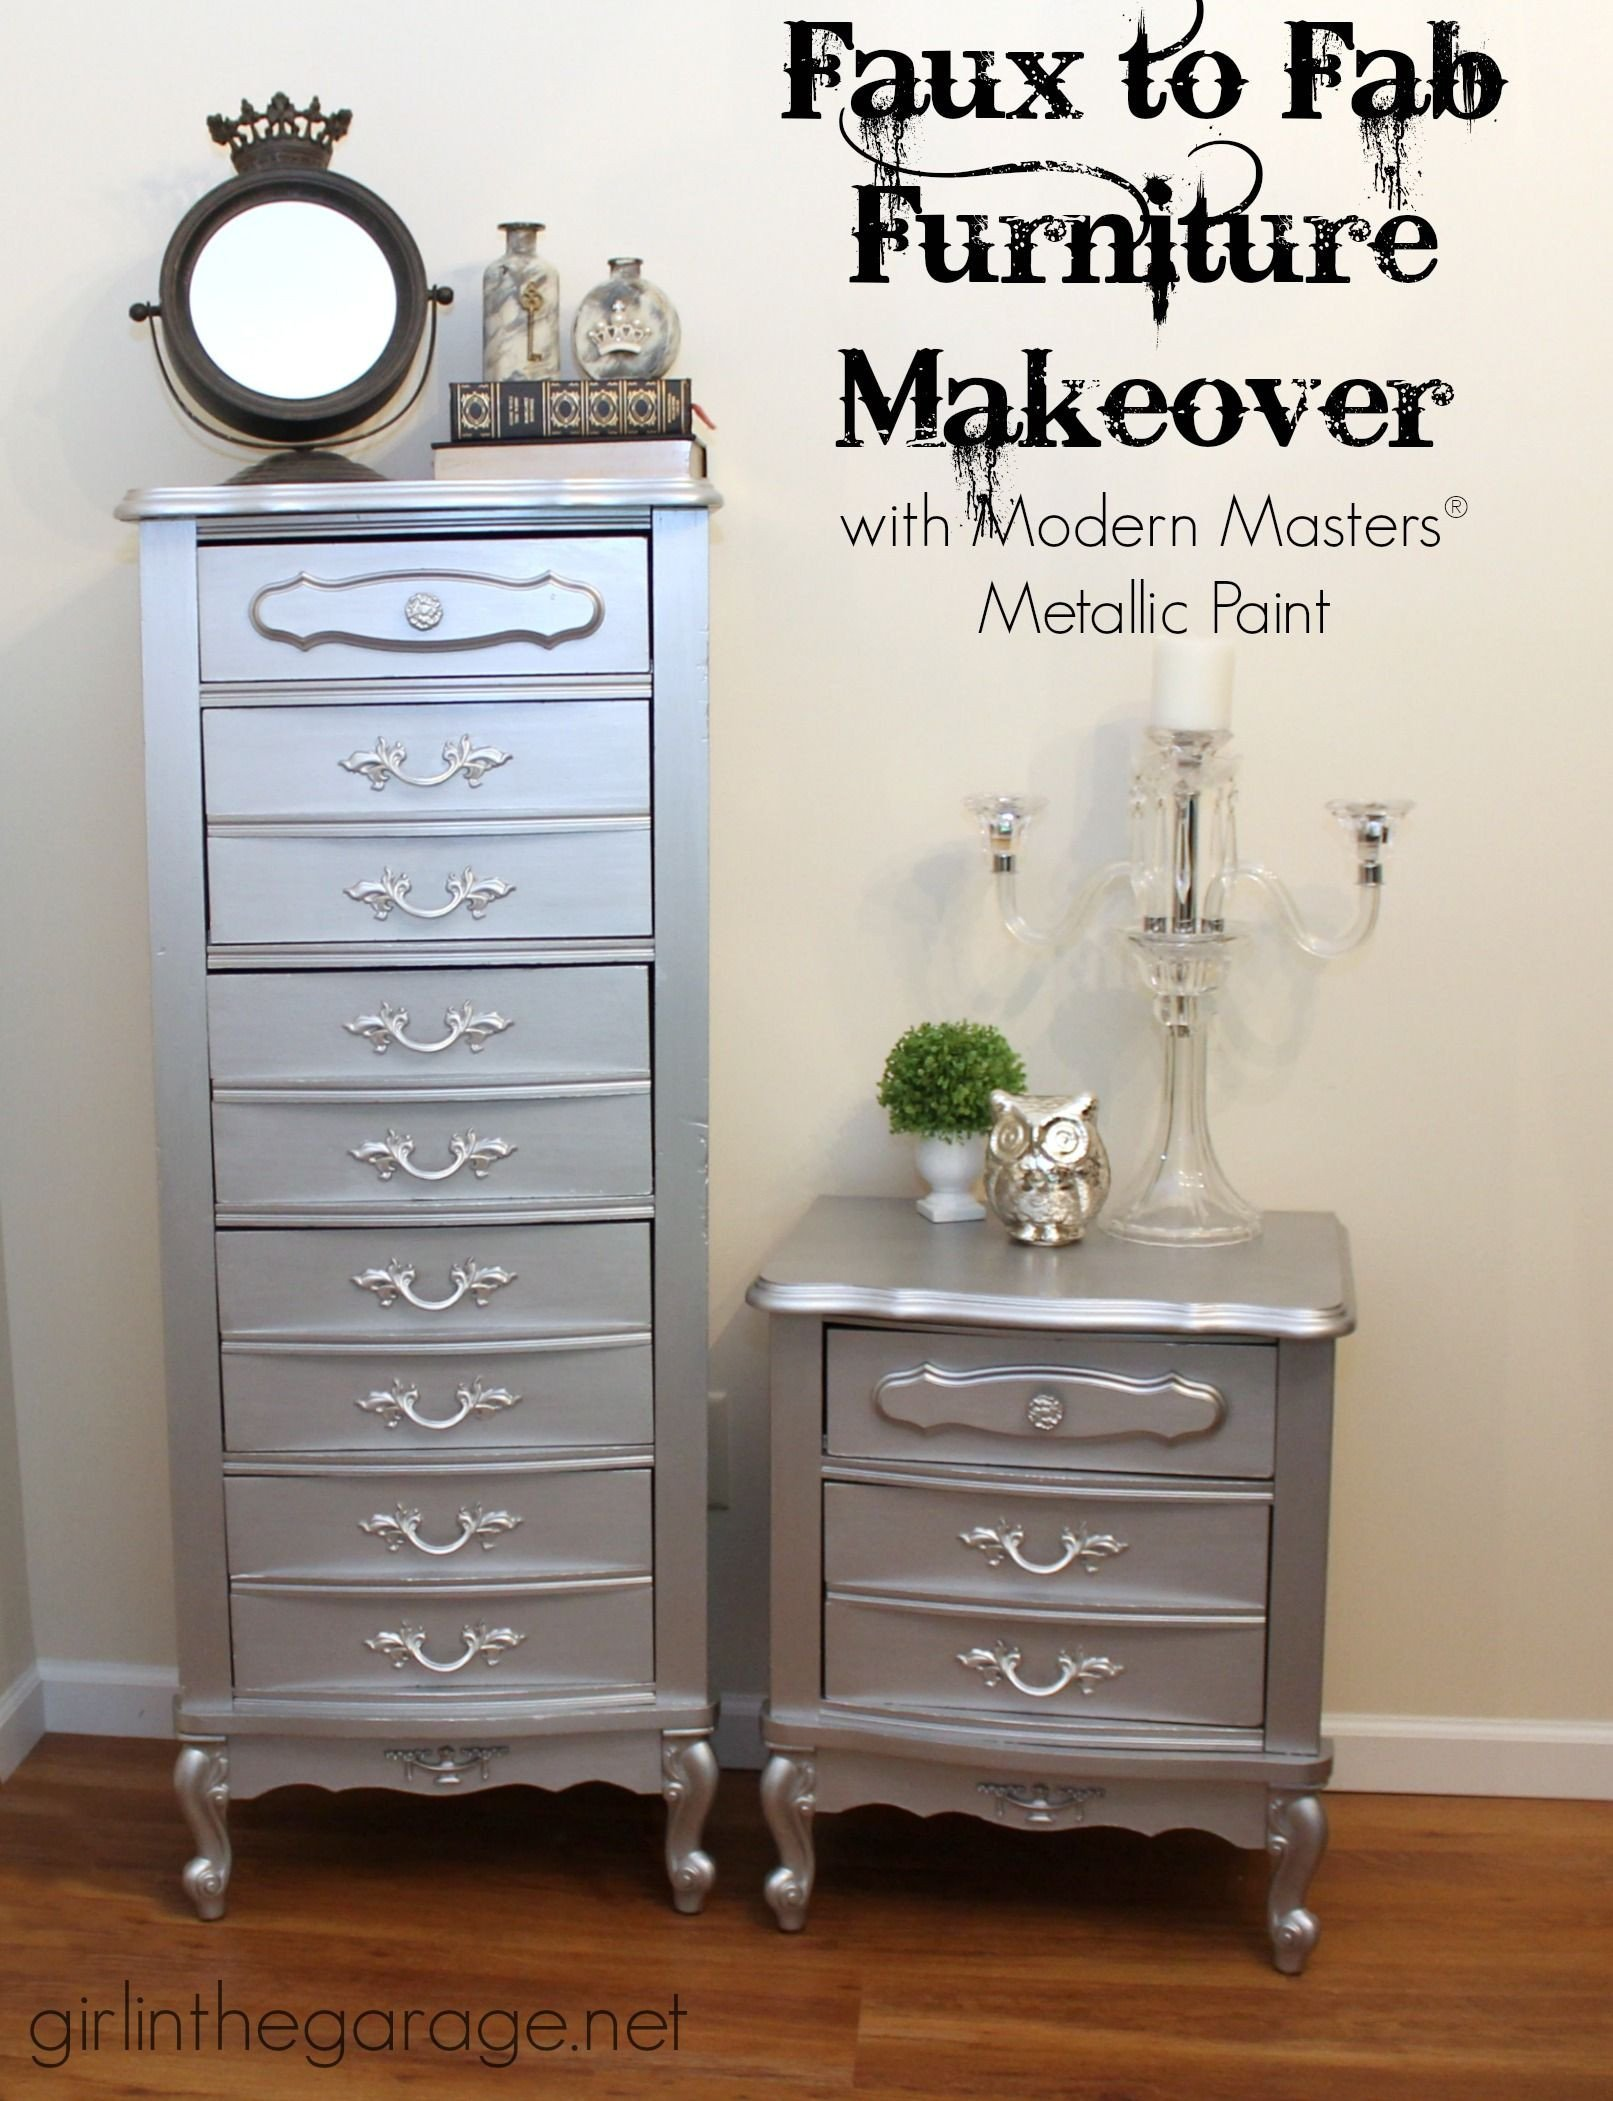 French Provincial Bedroom Furniture Beautiful Faux to Fab Metallic Furniture Makeover with Modern Masters